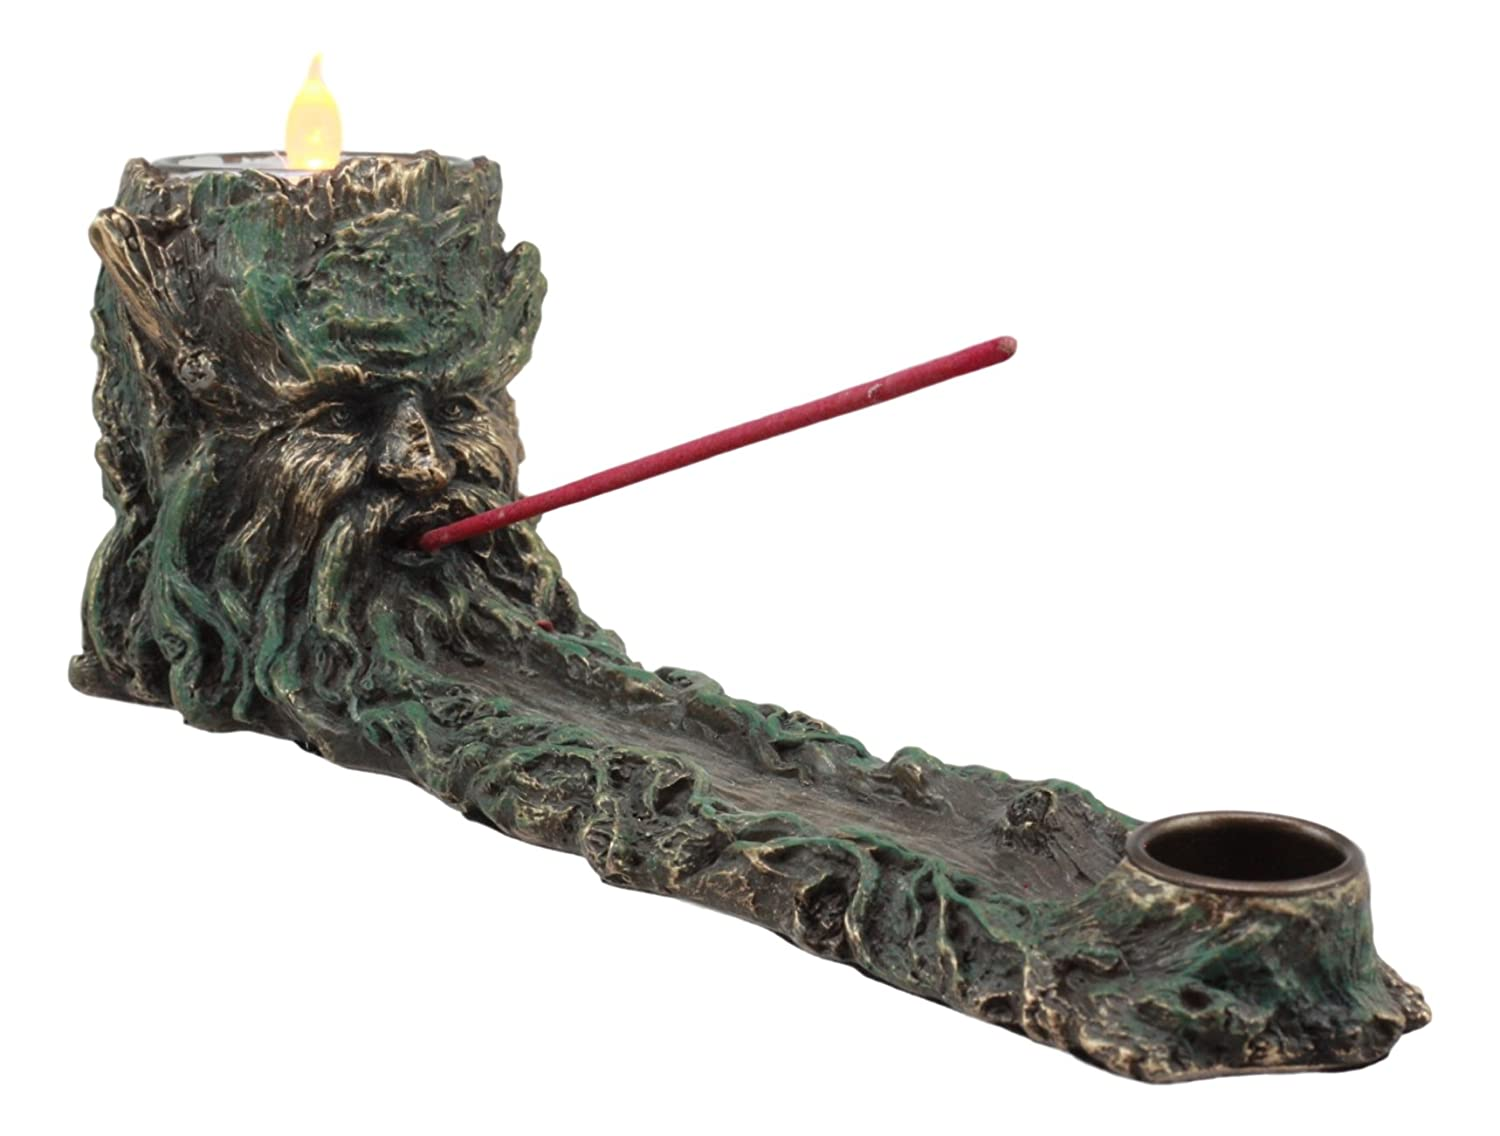 """Ebros Mystic Wisteria Forest Ent Nature Tree God Greenman Votive Candle Holder And Incense Stick And Cone Burner Statue 11""""Long Forest Puffs Greenman Home Decor"""